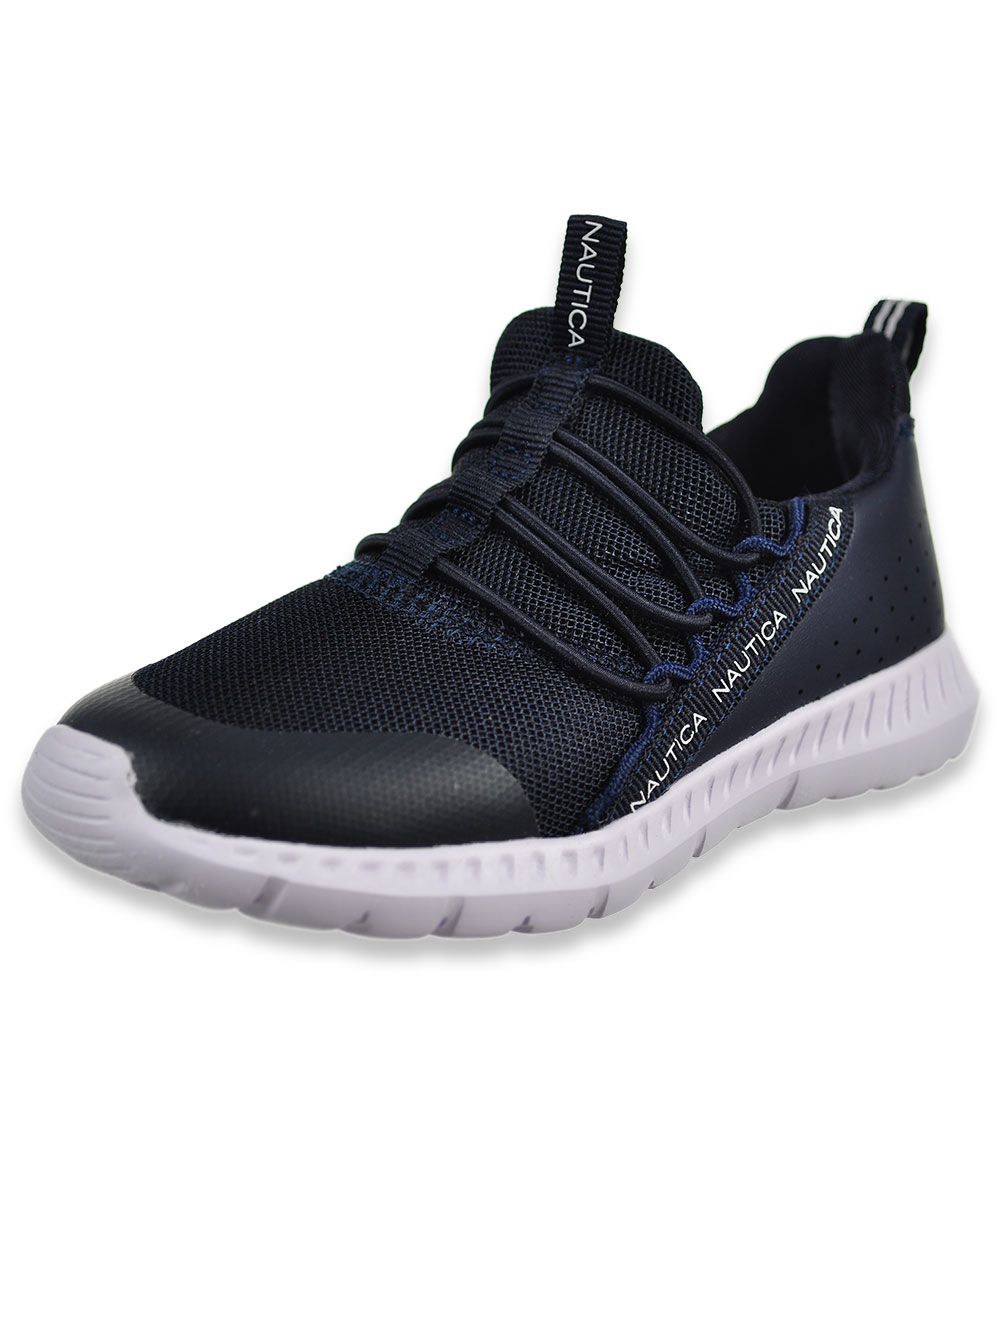 Boys' Kinssale Sneakers